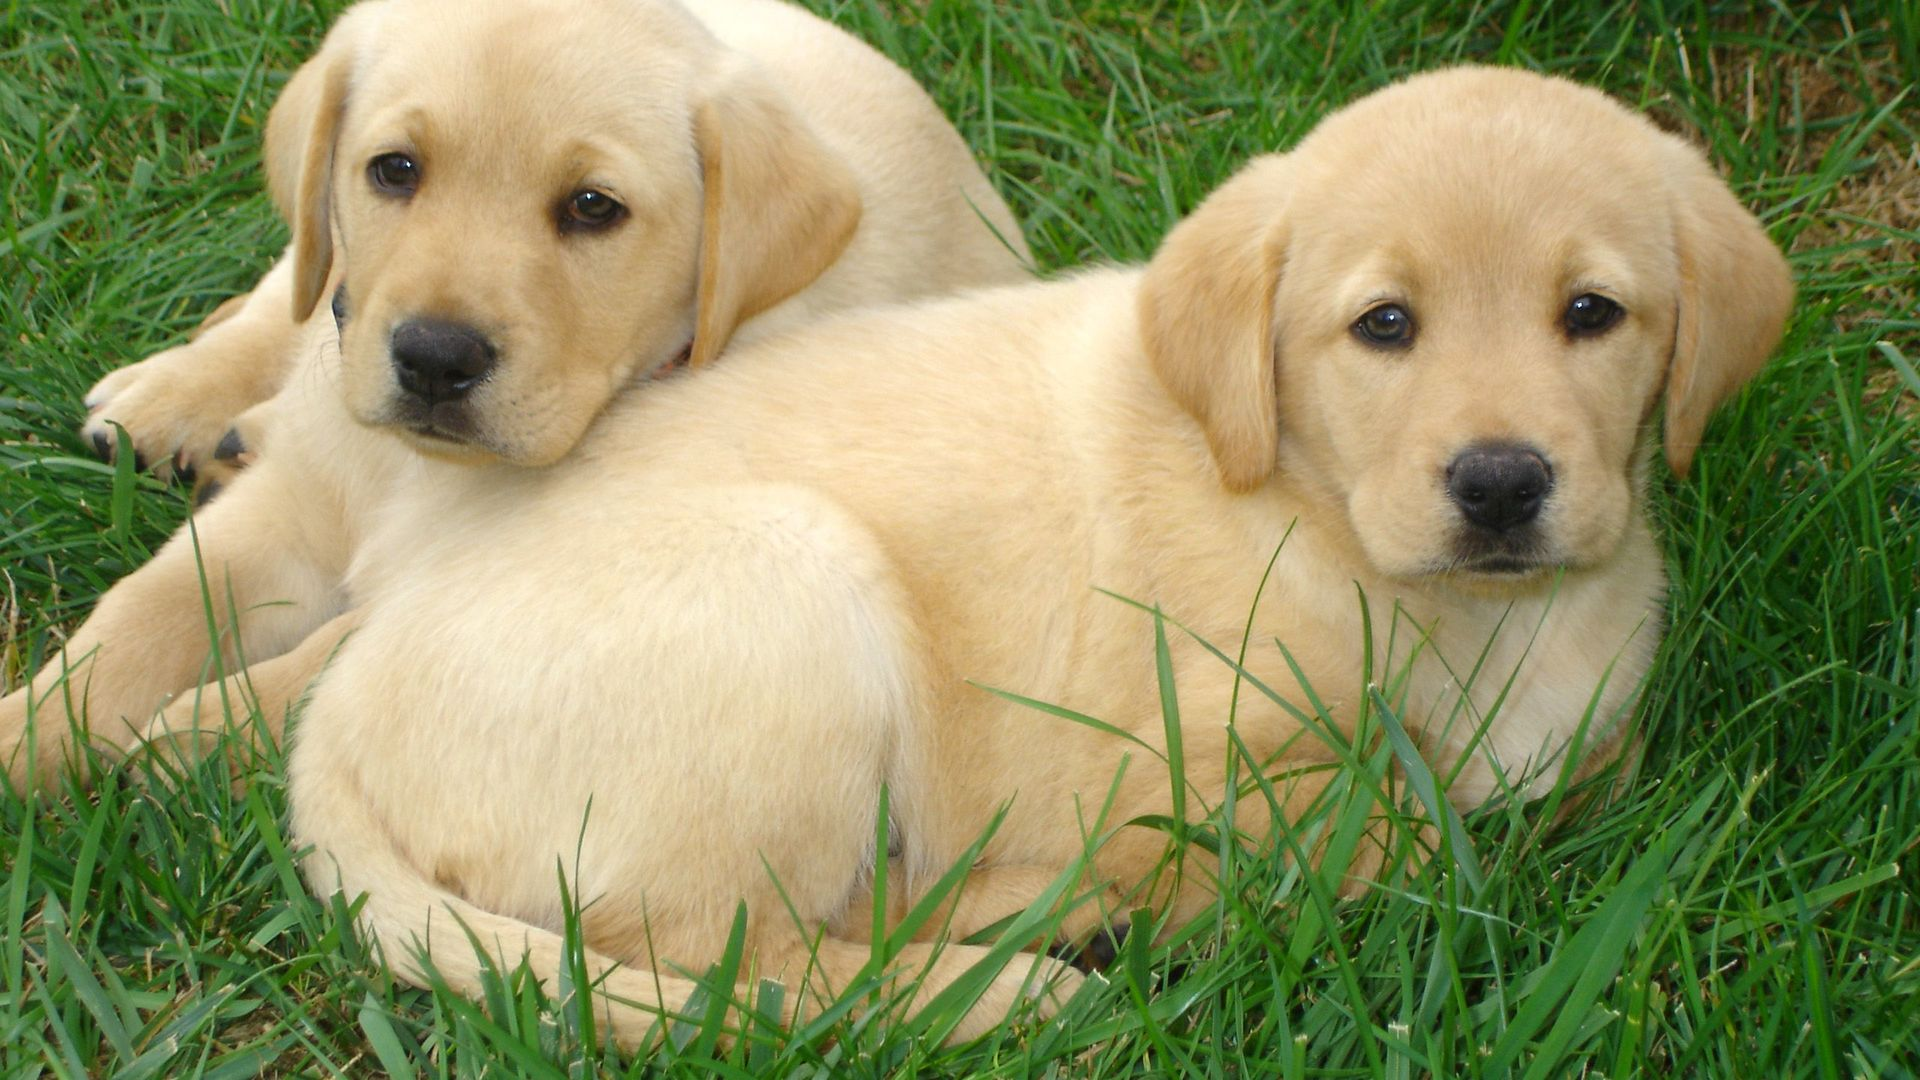 Labrador Retriever Puppies Free Hd Wallpapers Hd Wallpaper